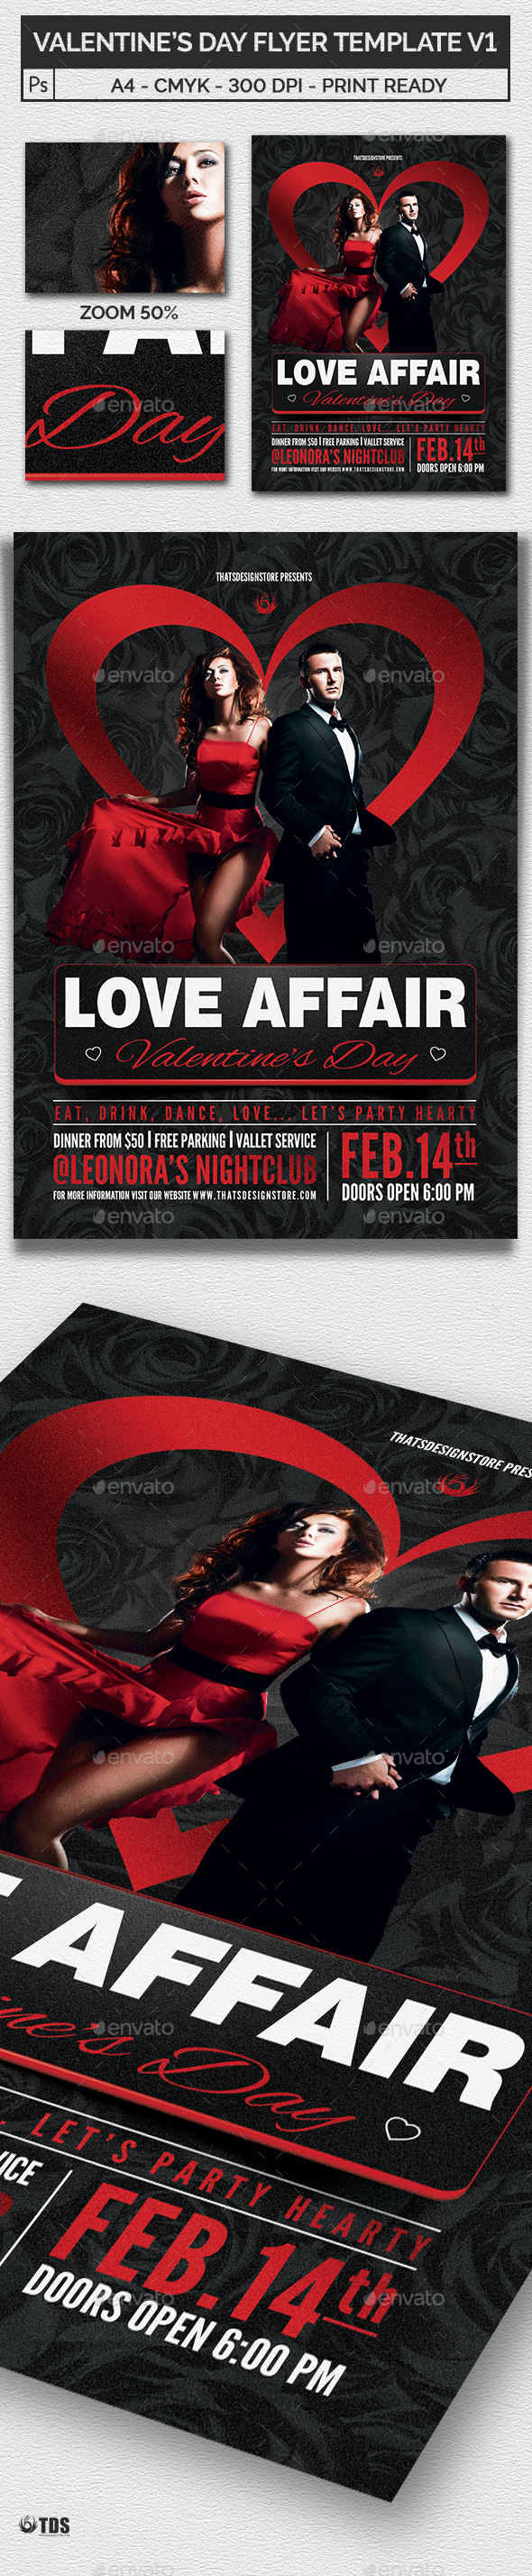 Valentines Day Flyer Template V1 - Flyers Print Templates